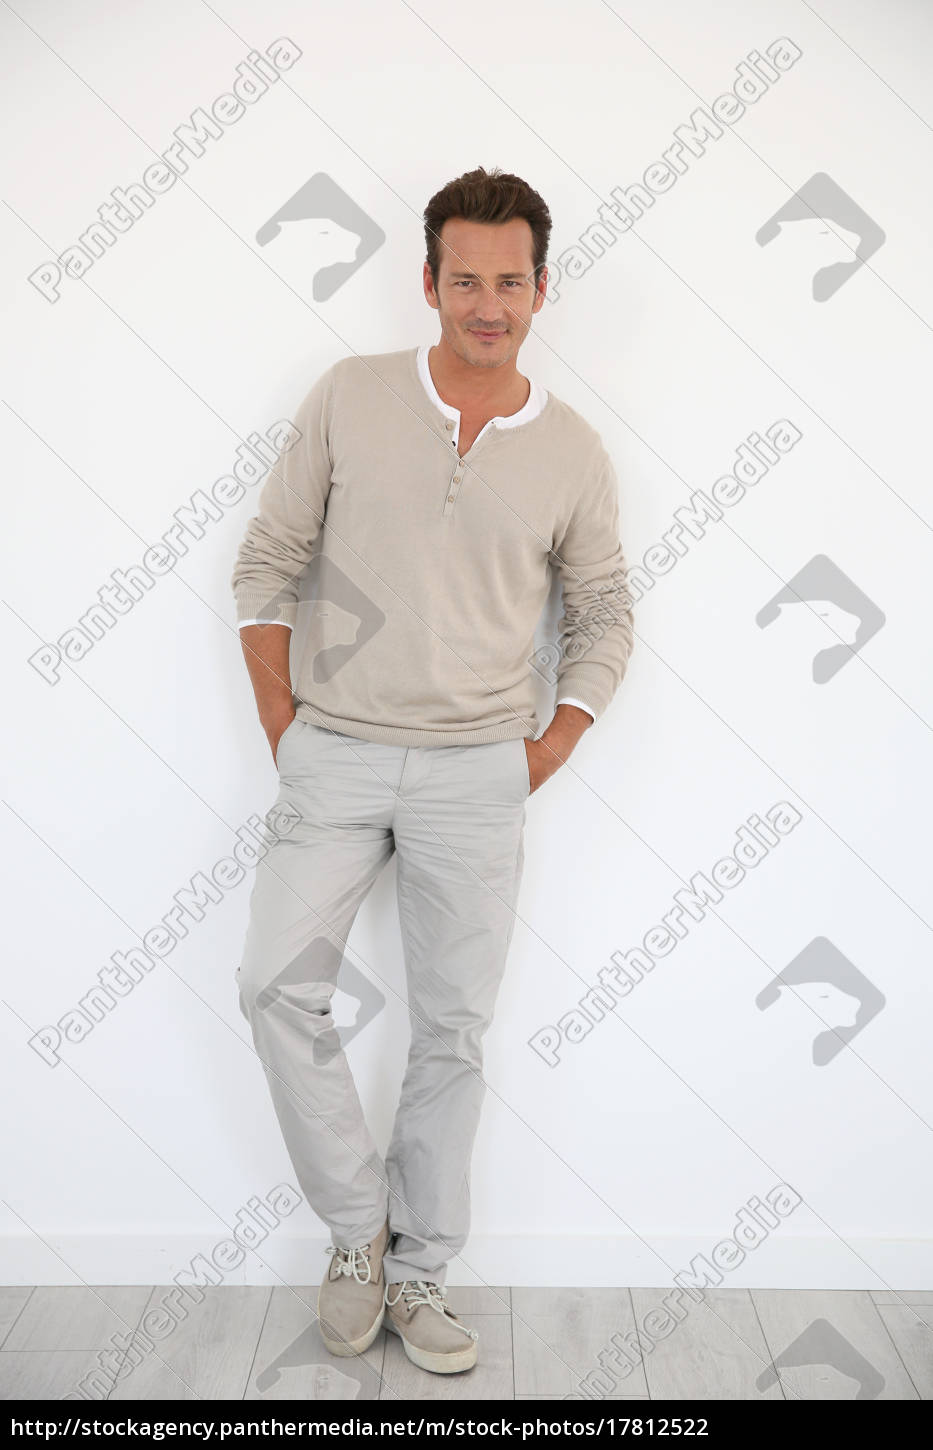 40 Year Old Man On White Background